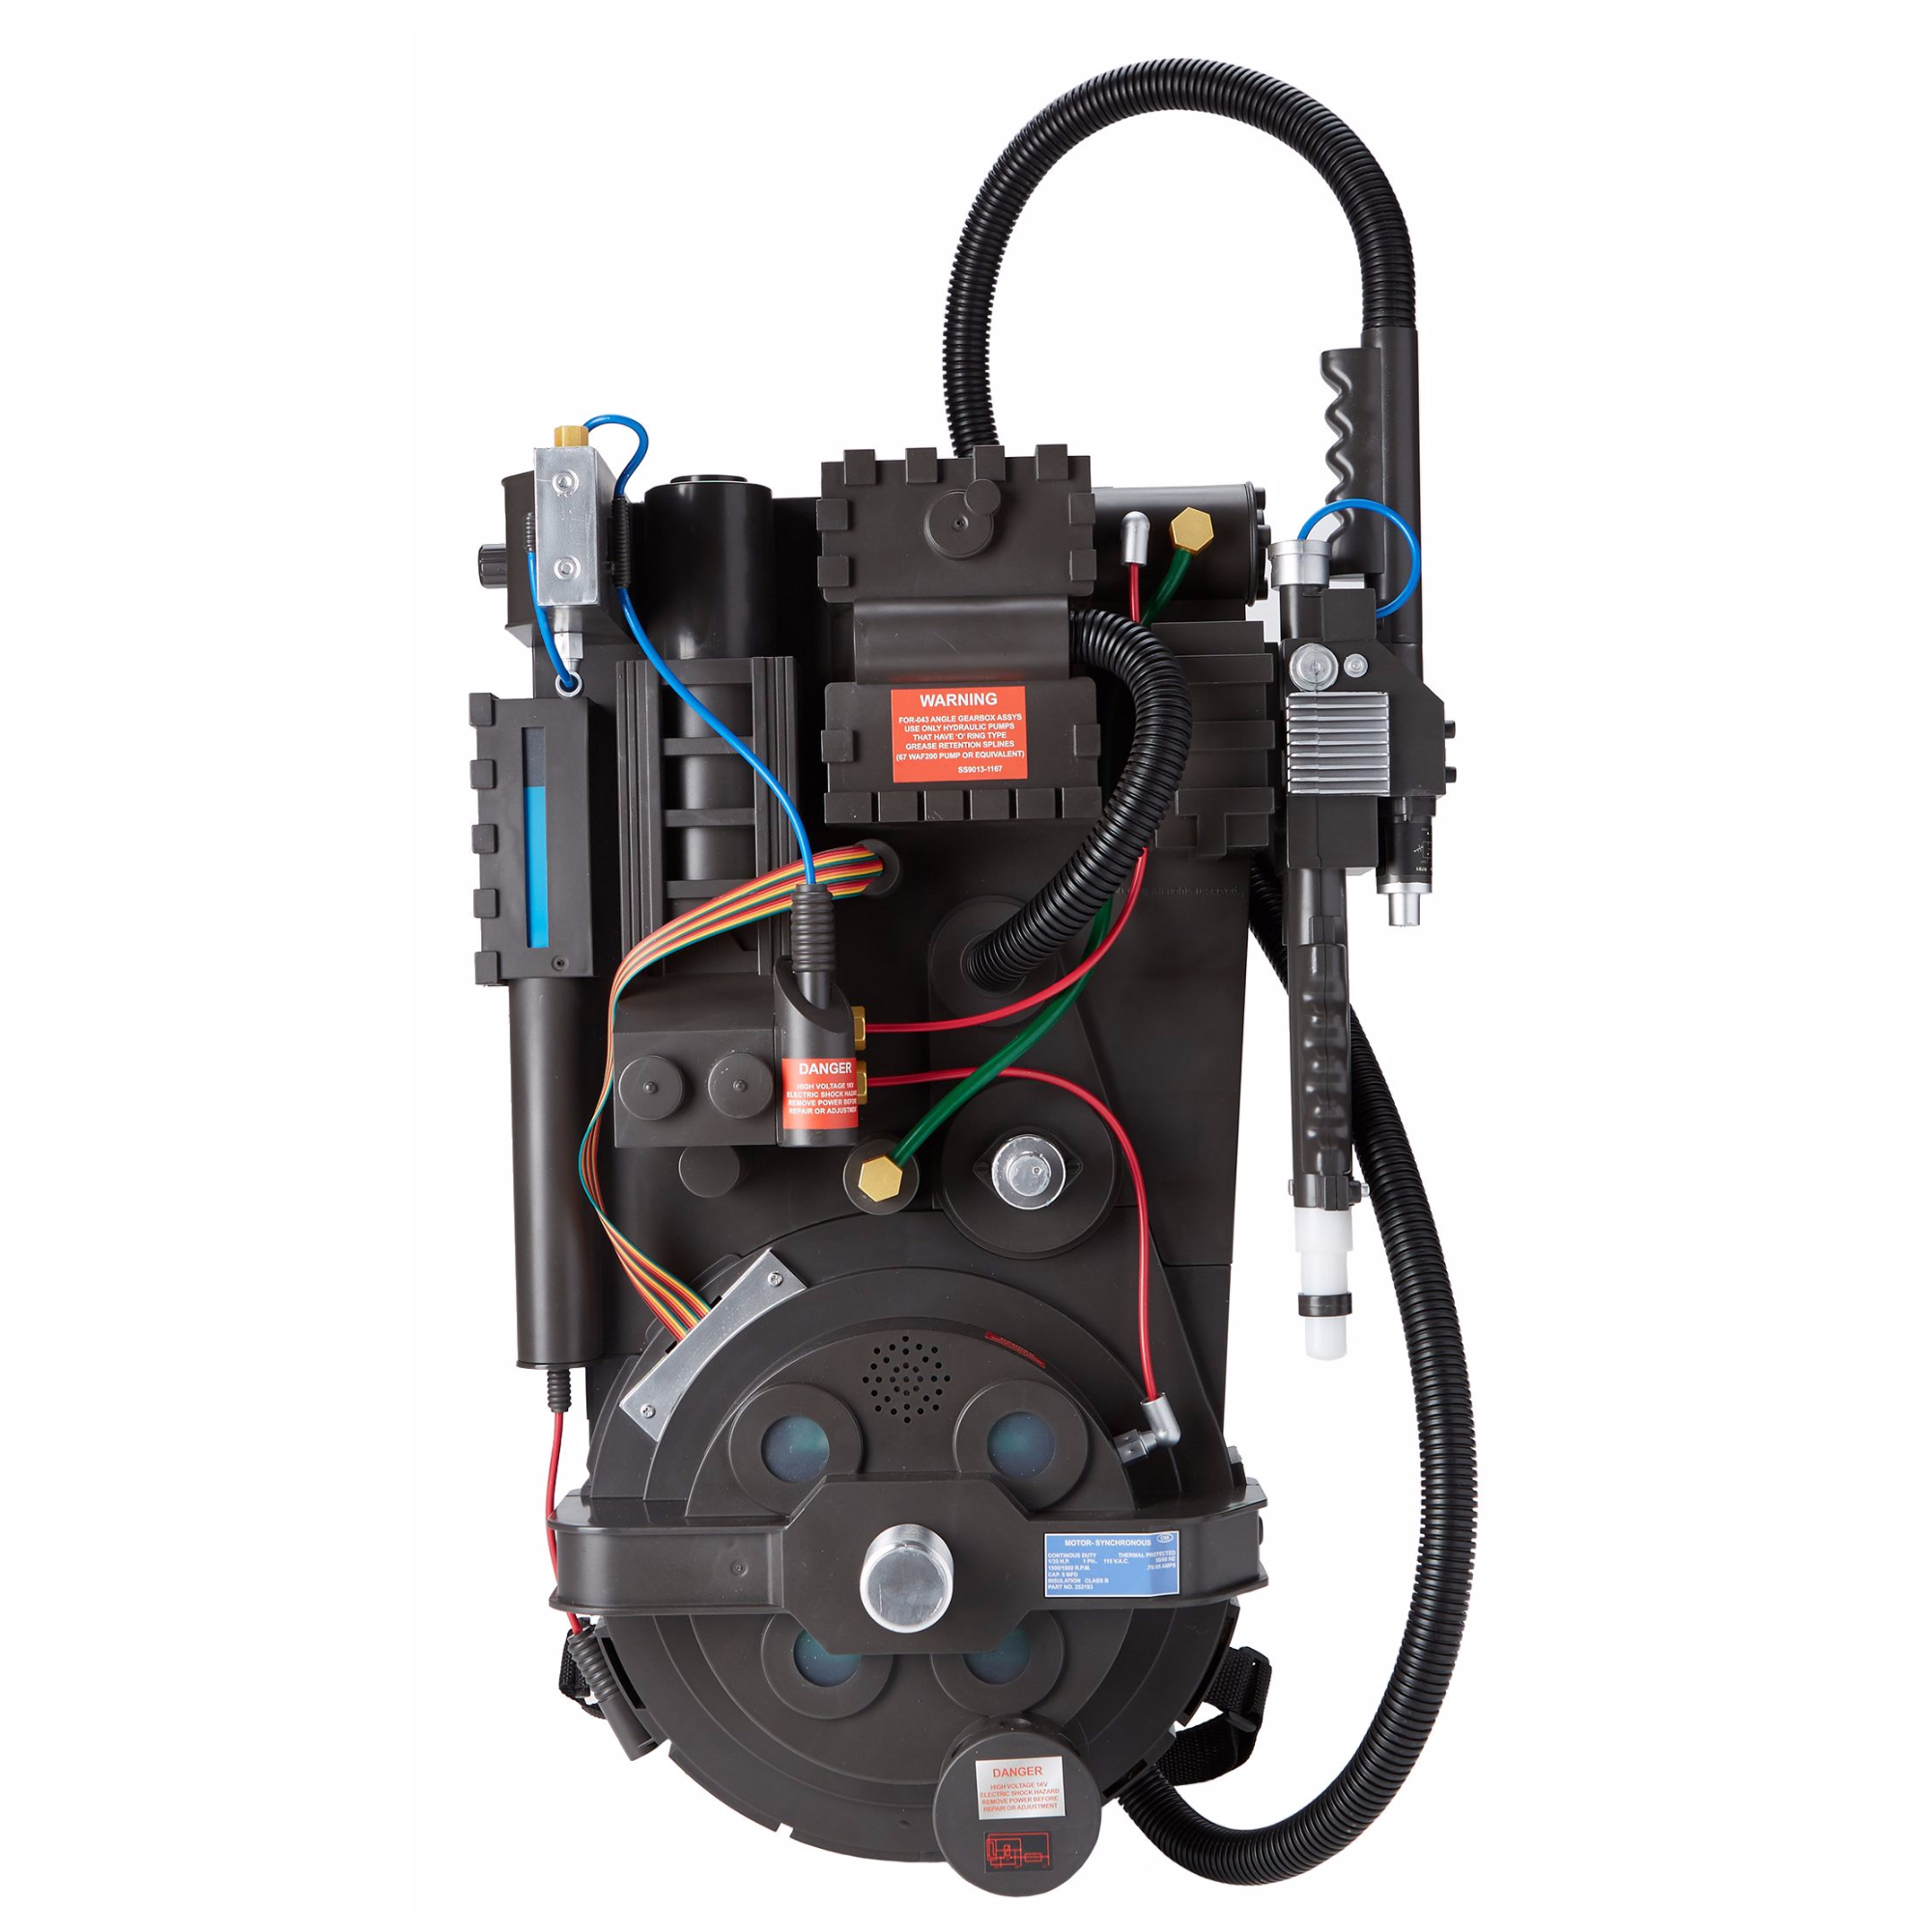 Ghostbusters Deluxe Proton Pack Replica Pack Parts